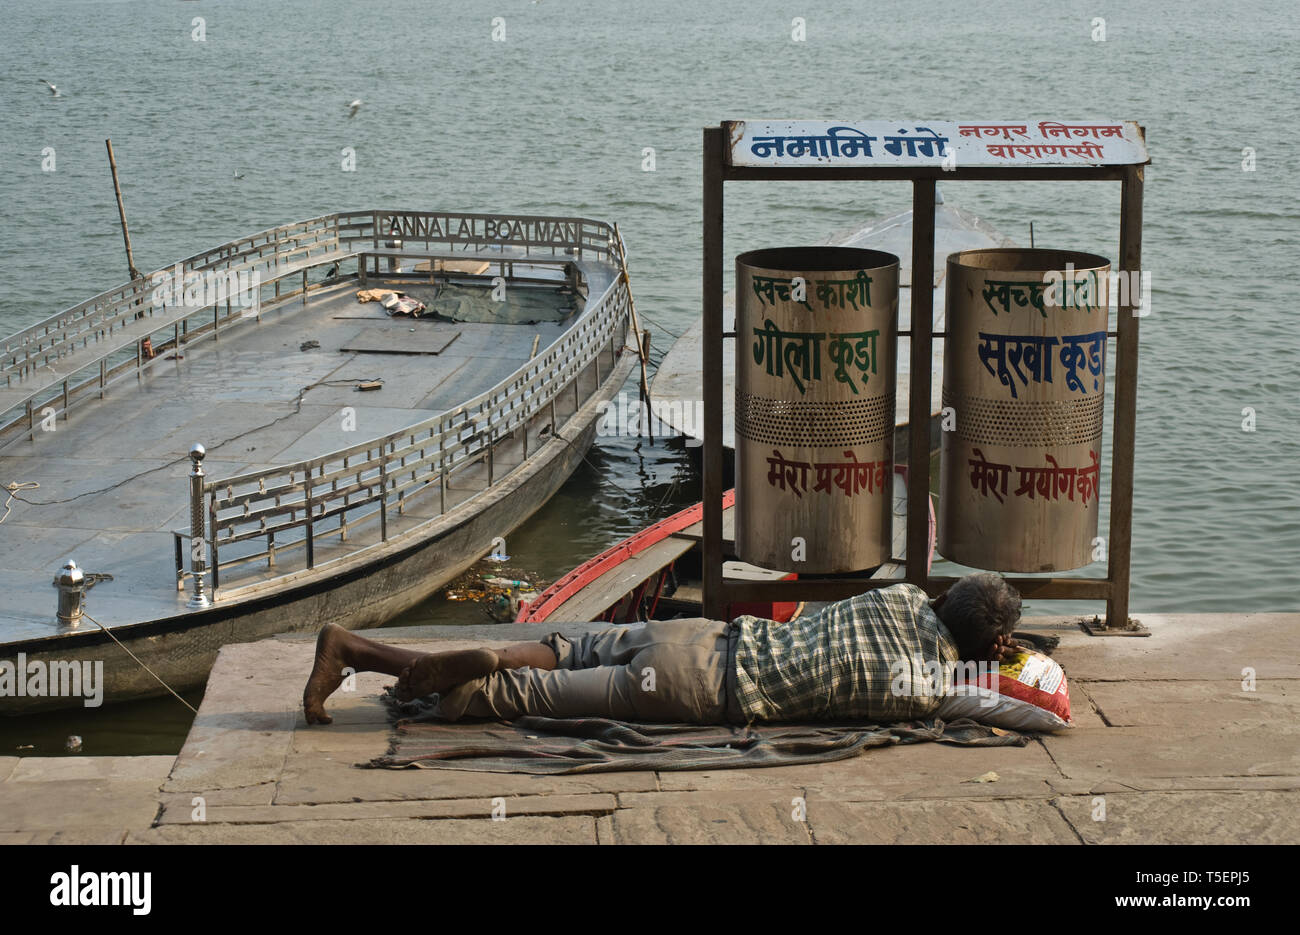 Poor man sleeping near public trash bins ( India). The scene takes place on a ghat, the Ganges river is visible in the background. - Stock Image